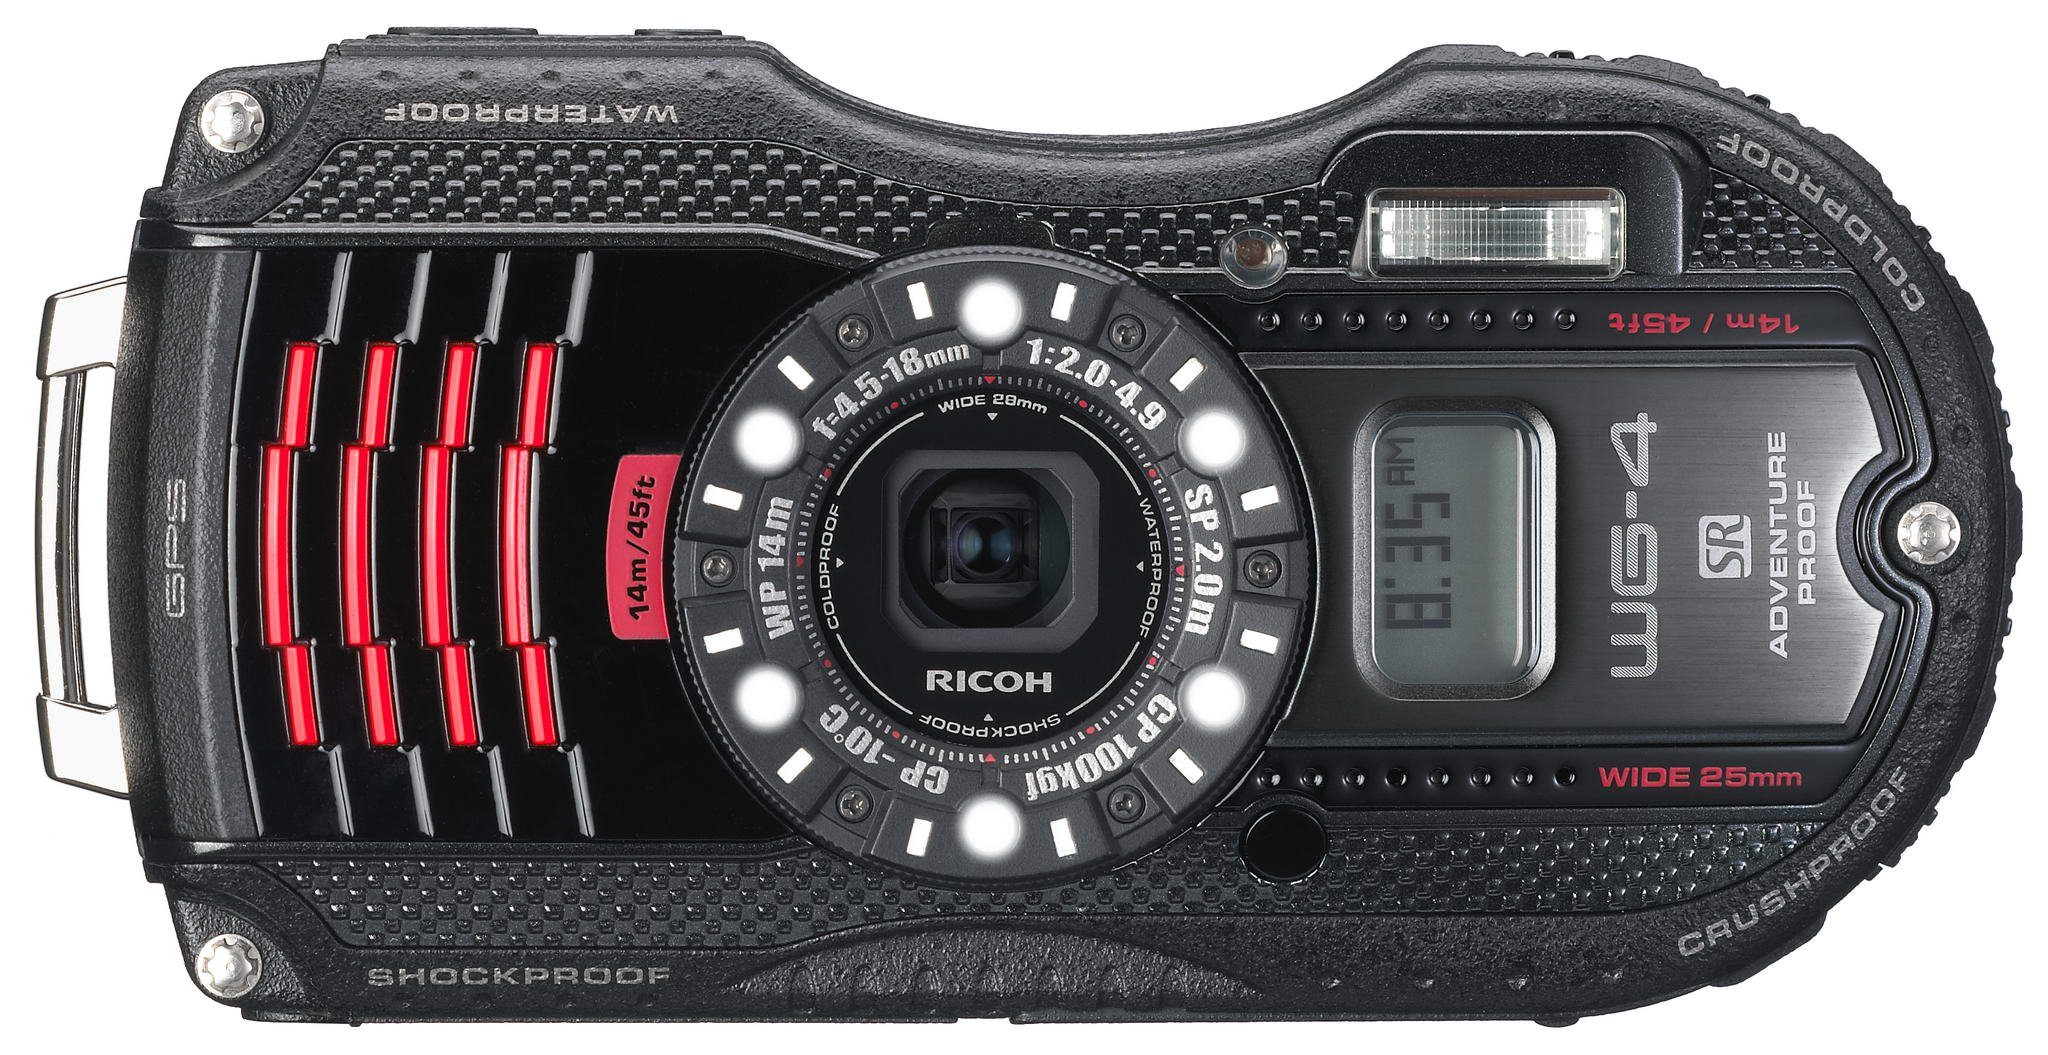 Waterproof digital camera black waterproof 14m; shock-resistant 2.0m; cold -10 degrees RICOH WG-4GPSBL 08558 - International Version (No Warranty)